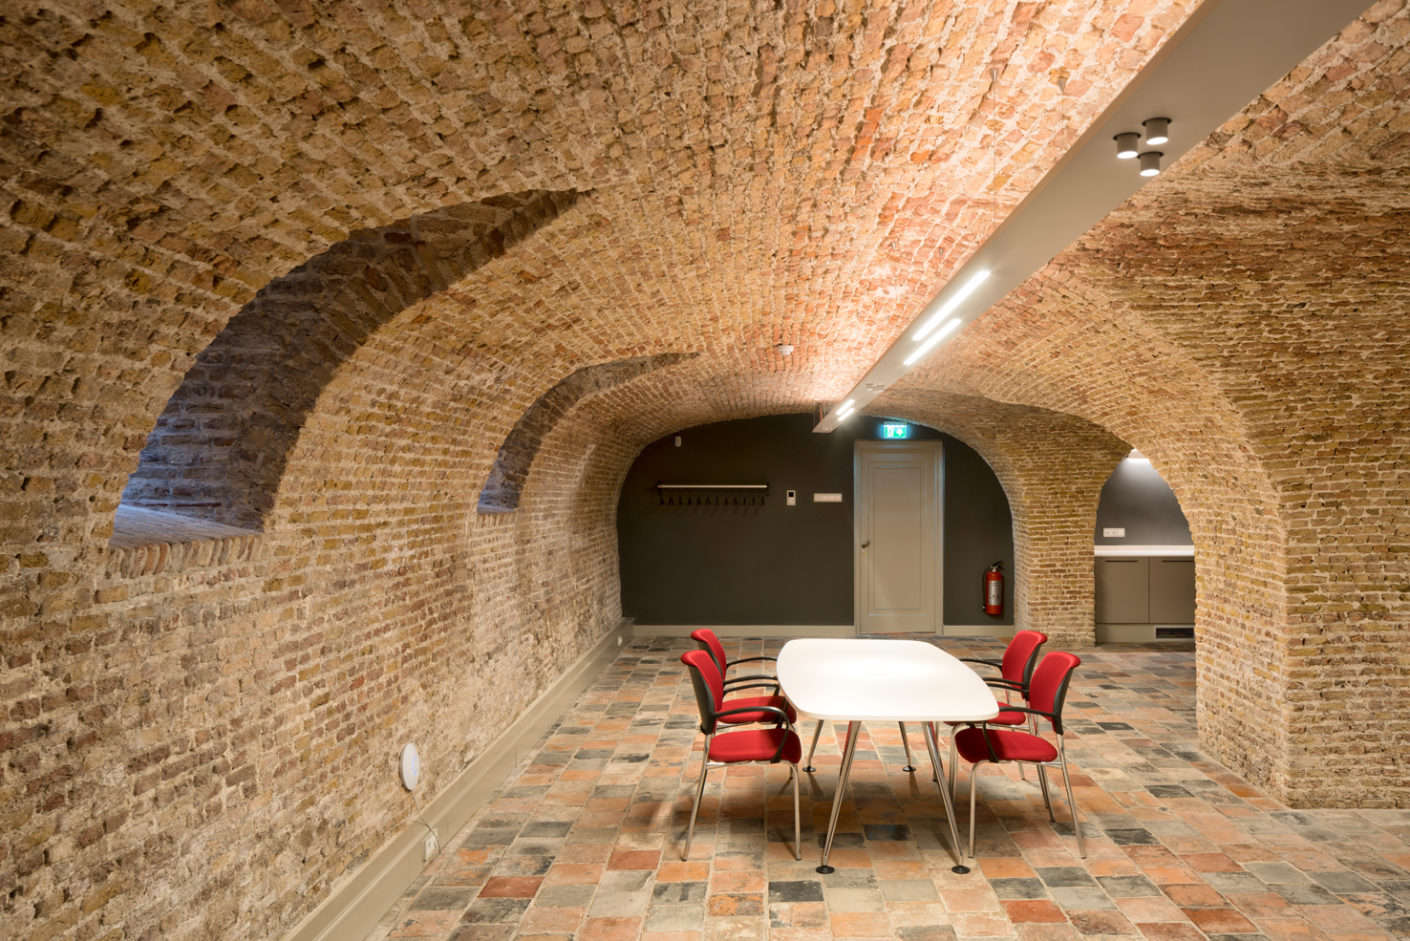 The original atmosphere of the 16th century building can be experienced in the cellar vault.